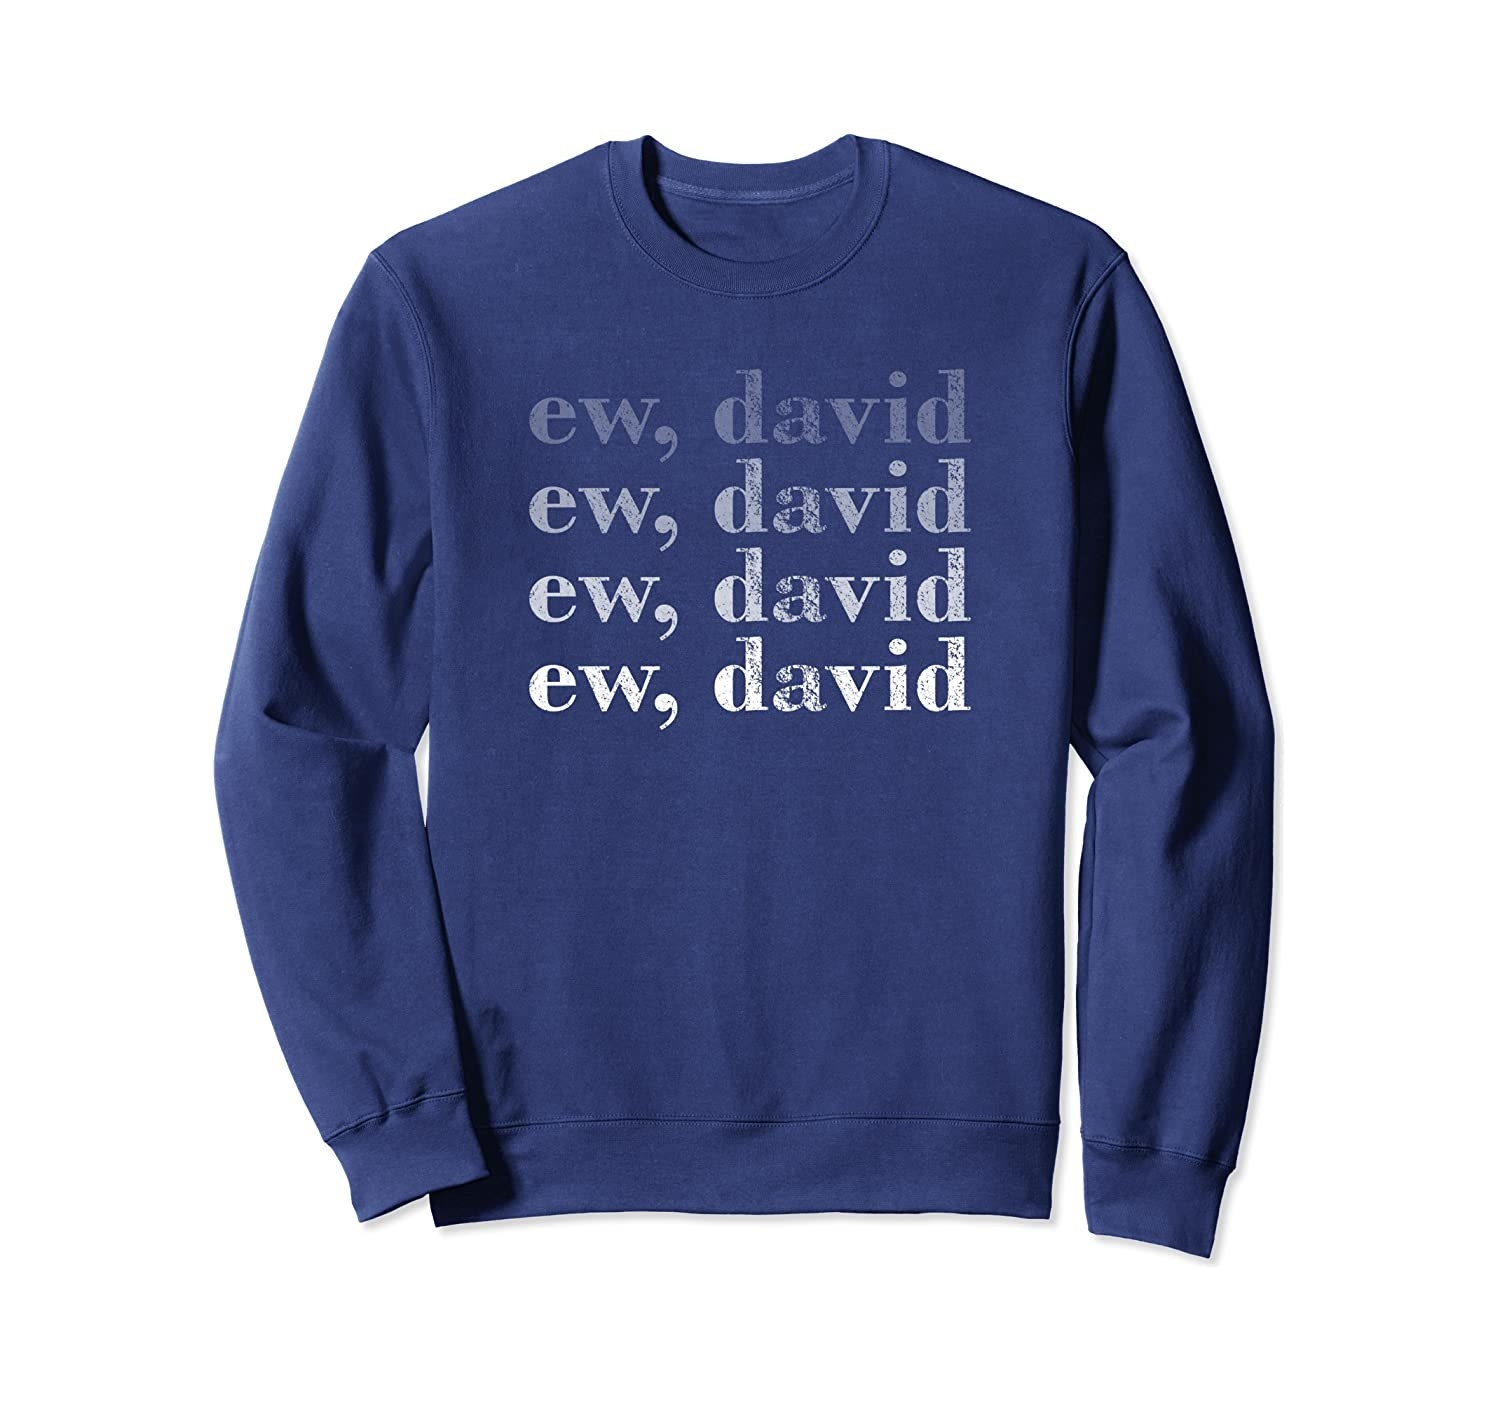 "The blue pullover sweatshirt with ""ew, david"" written on it four times in increasingly bold white font"